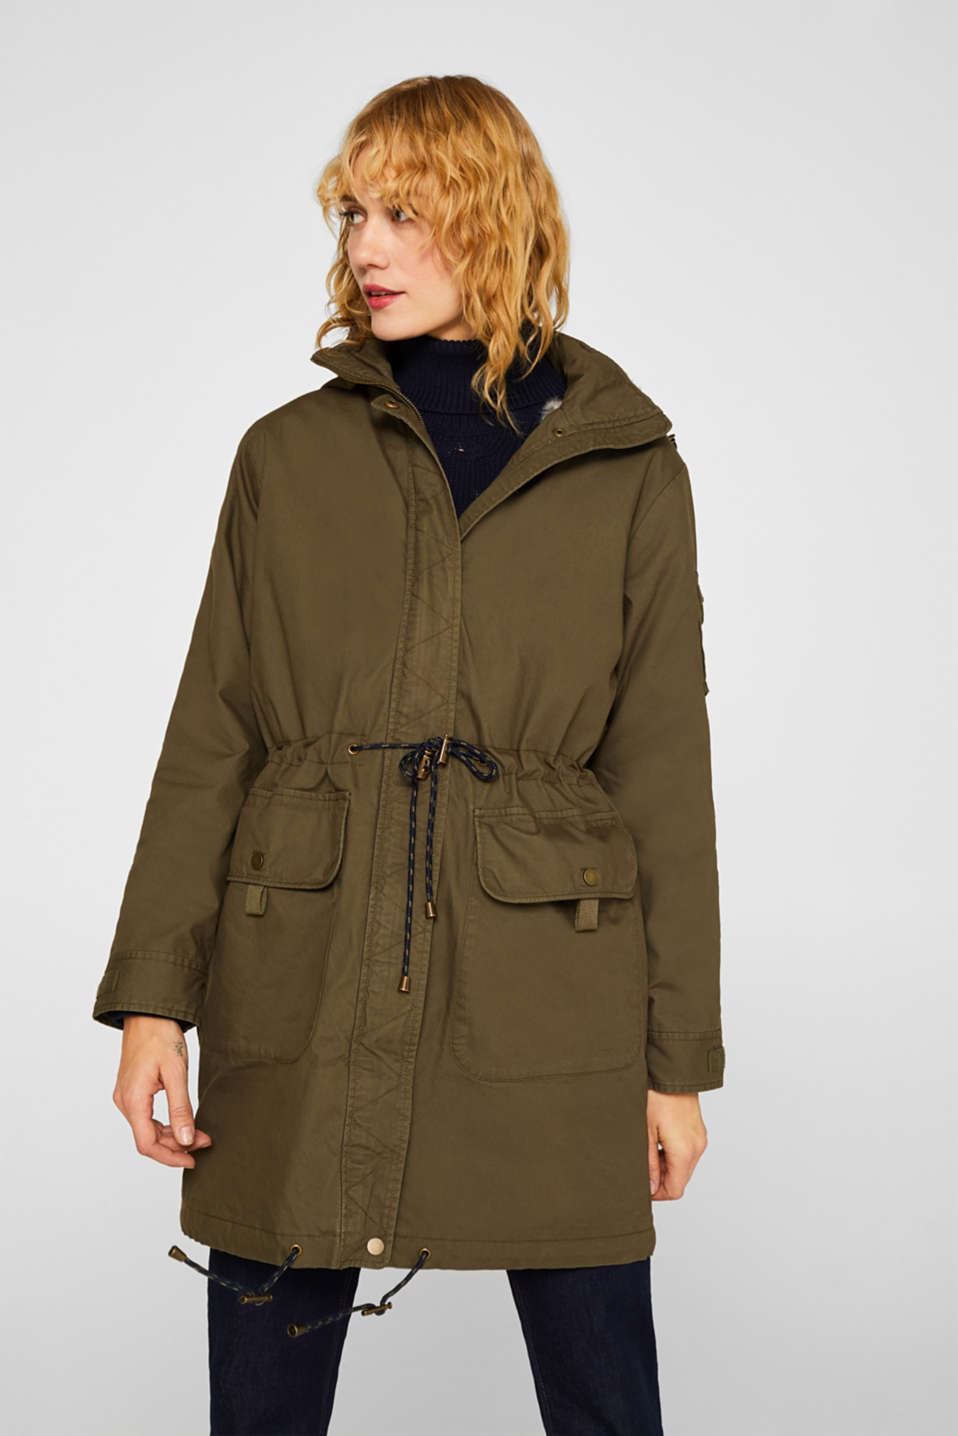 Esprit - 2-in-1 parka with an integrated faux fur jacket